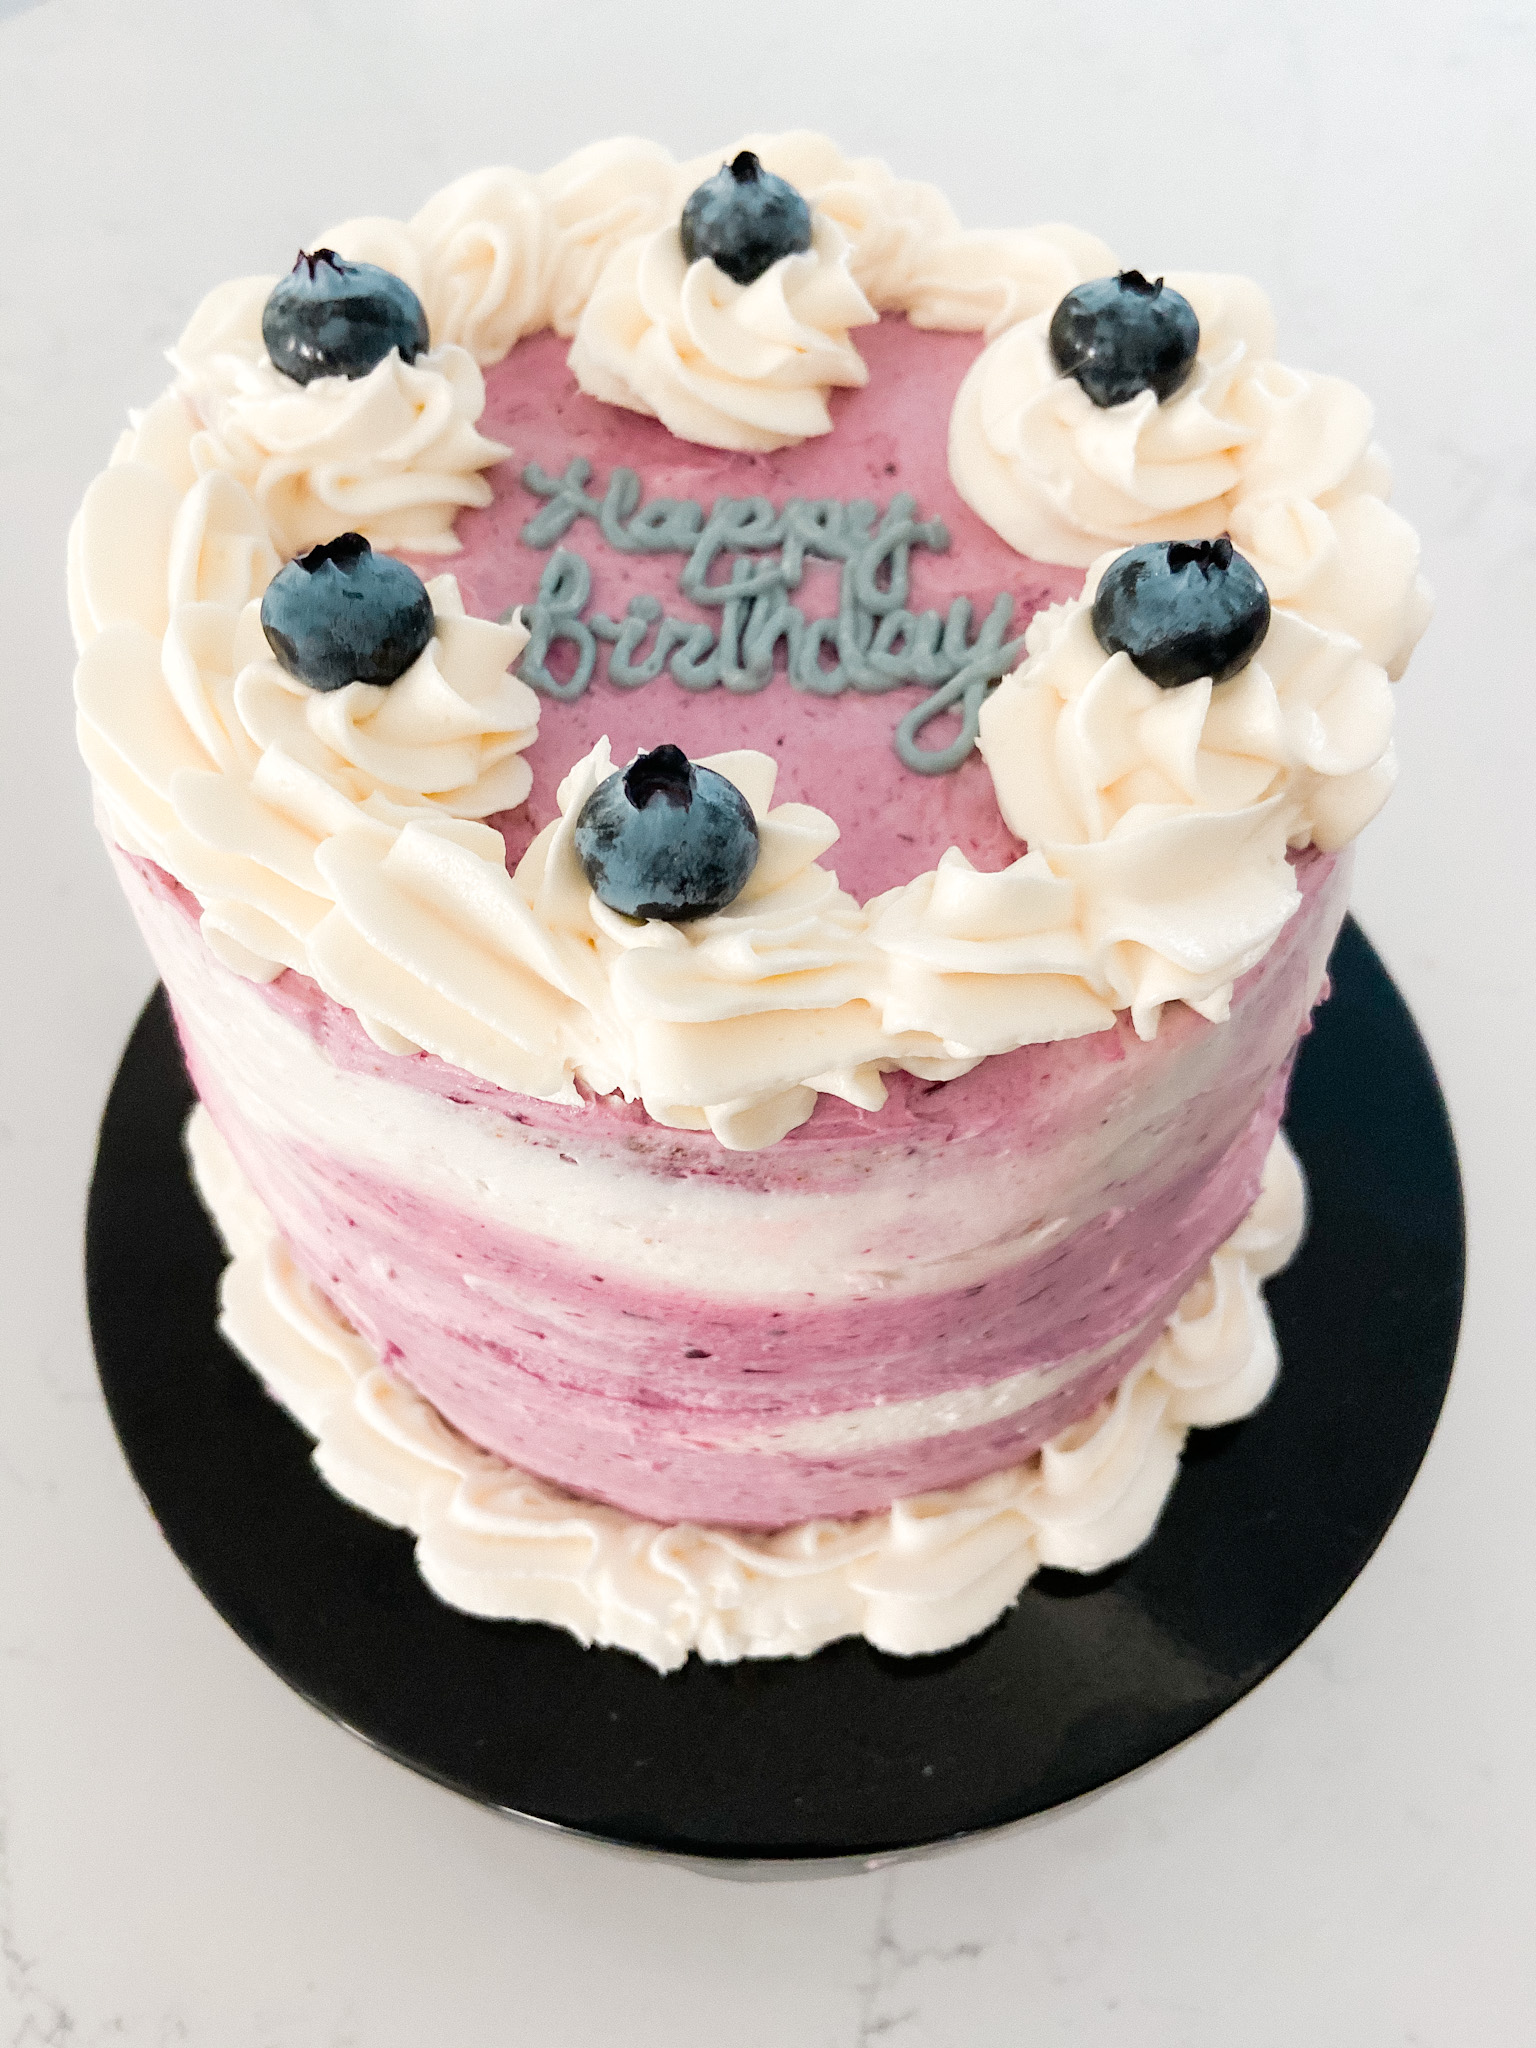 Homemade lemon cake with blueberry frosting and fruit compote filling.